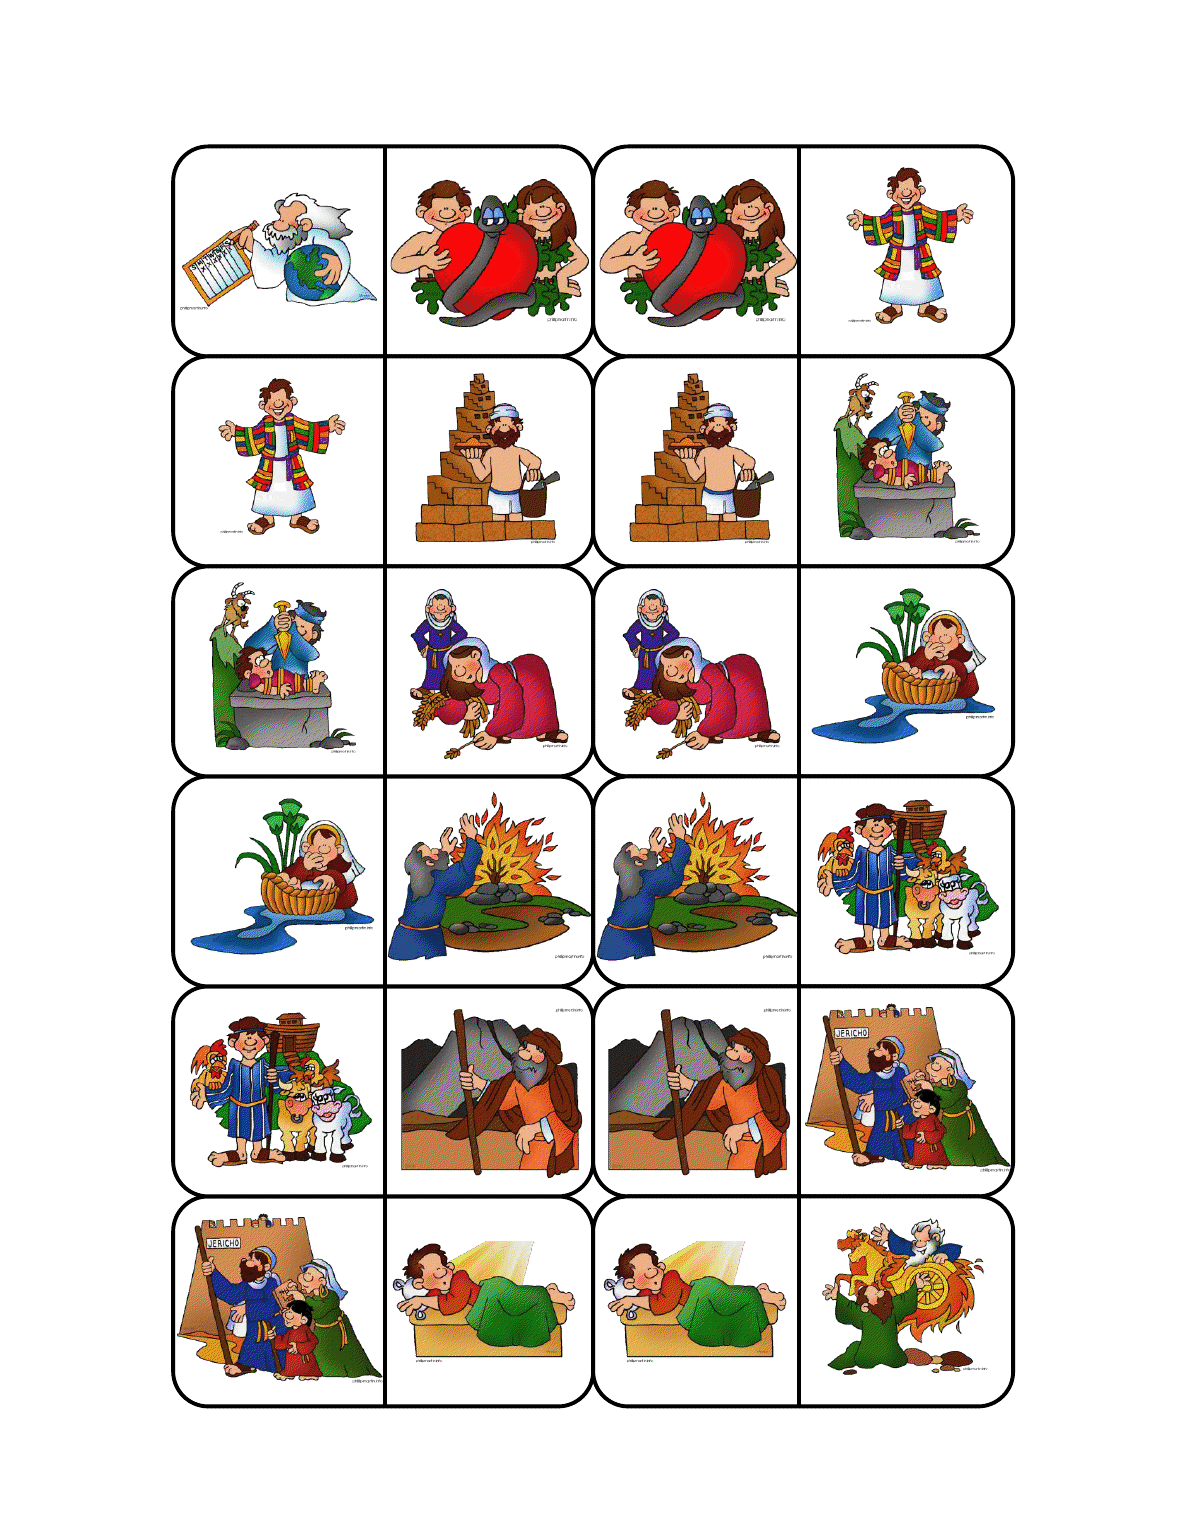 The Catholic Toolbox Bible Story Dominos Game